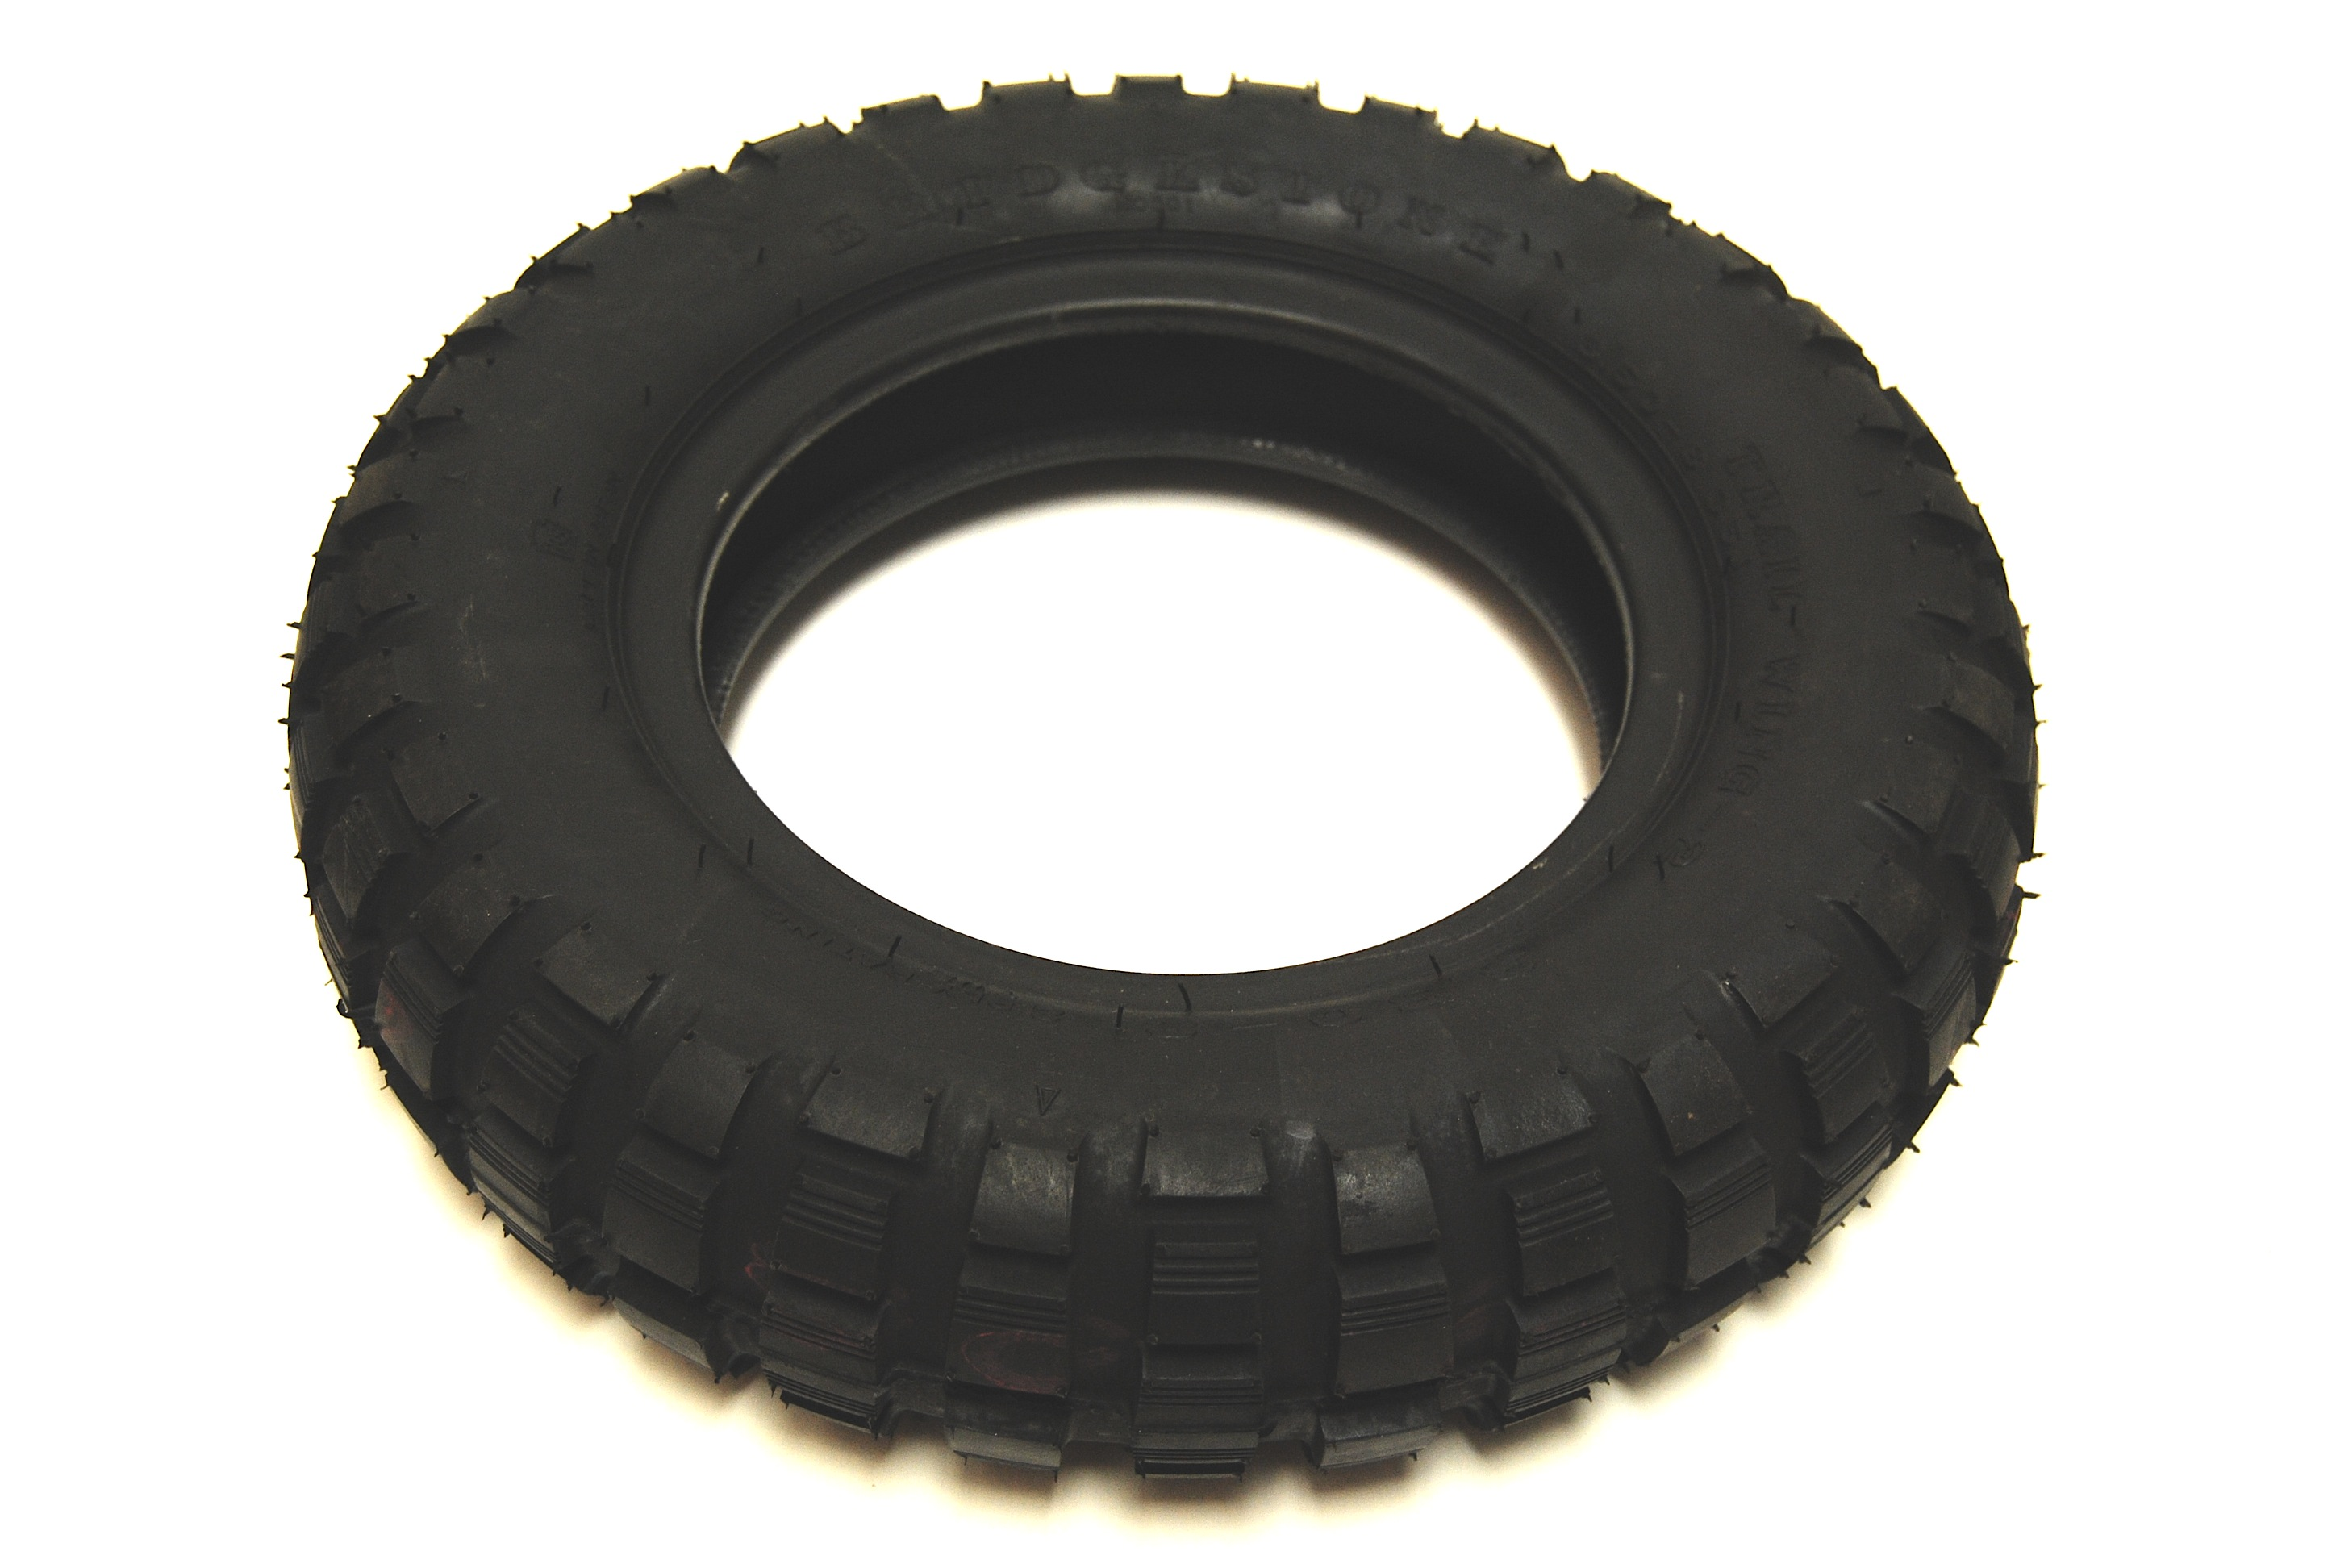 This inner tube is for use on minibike tires as shown in the image.